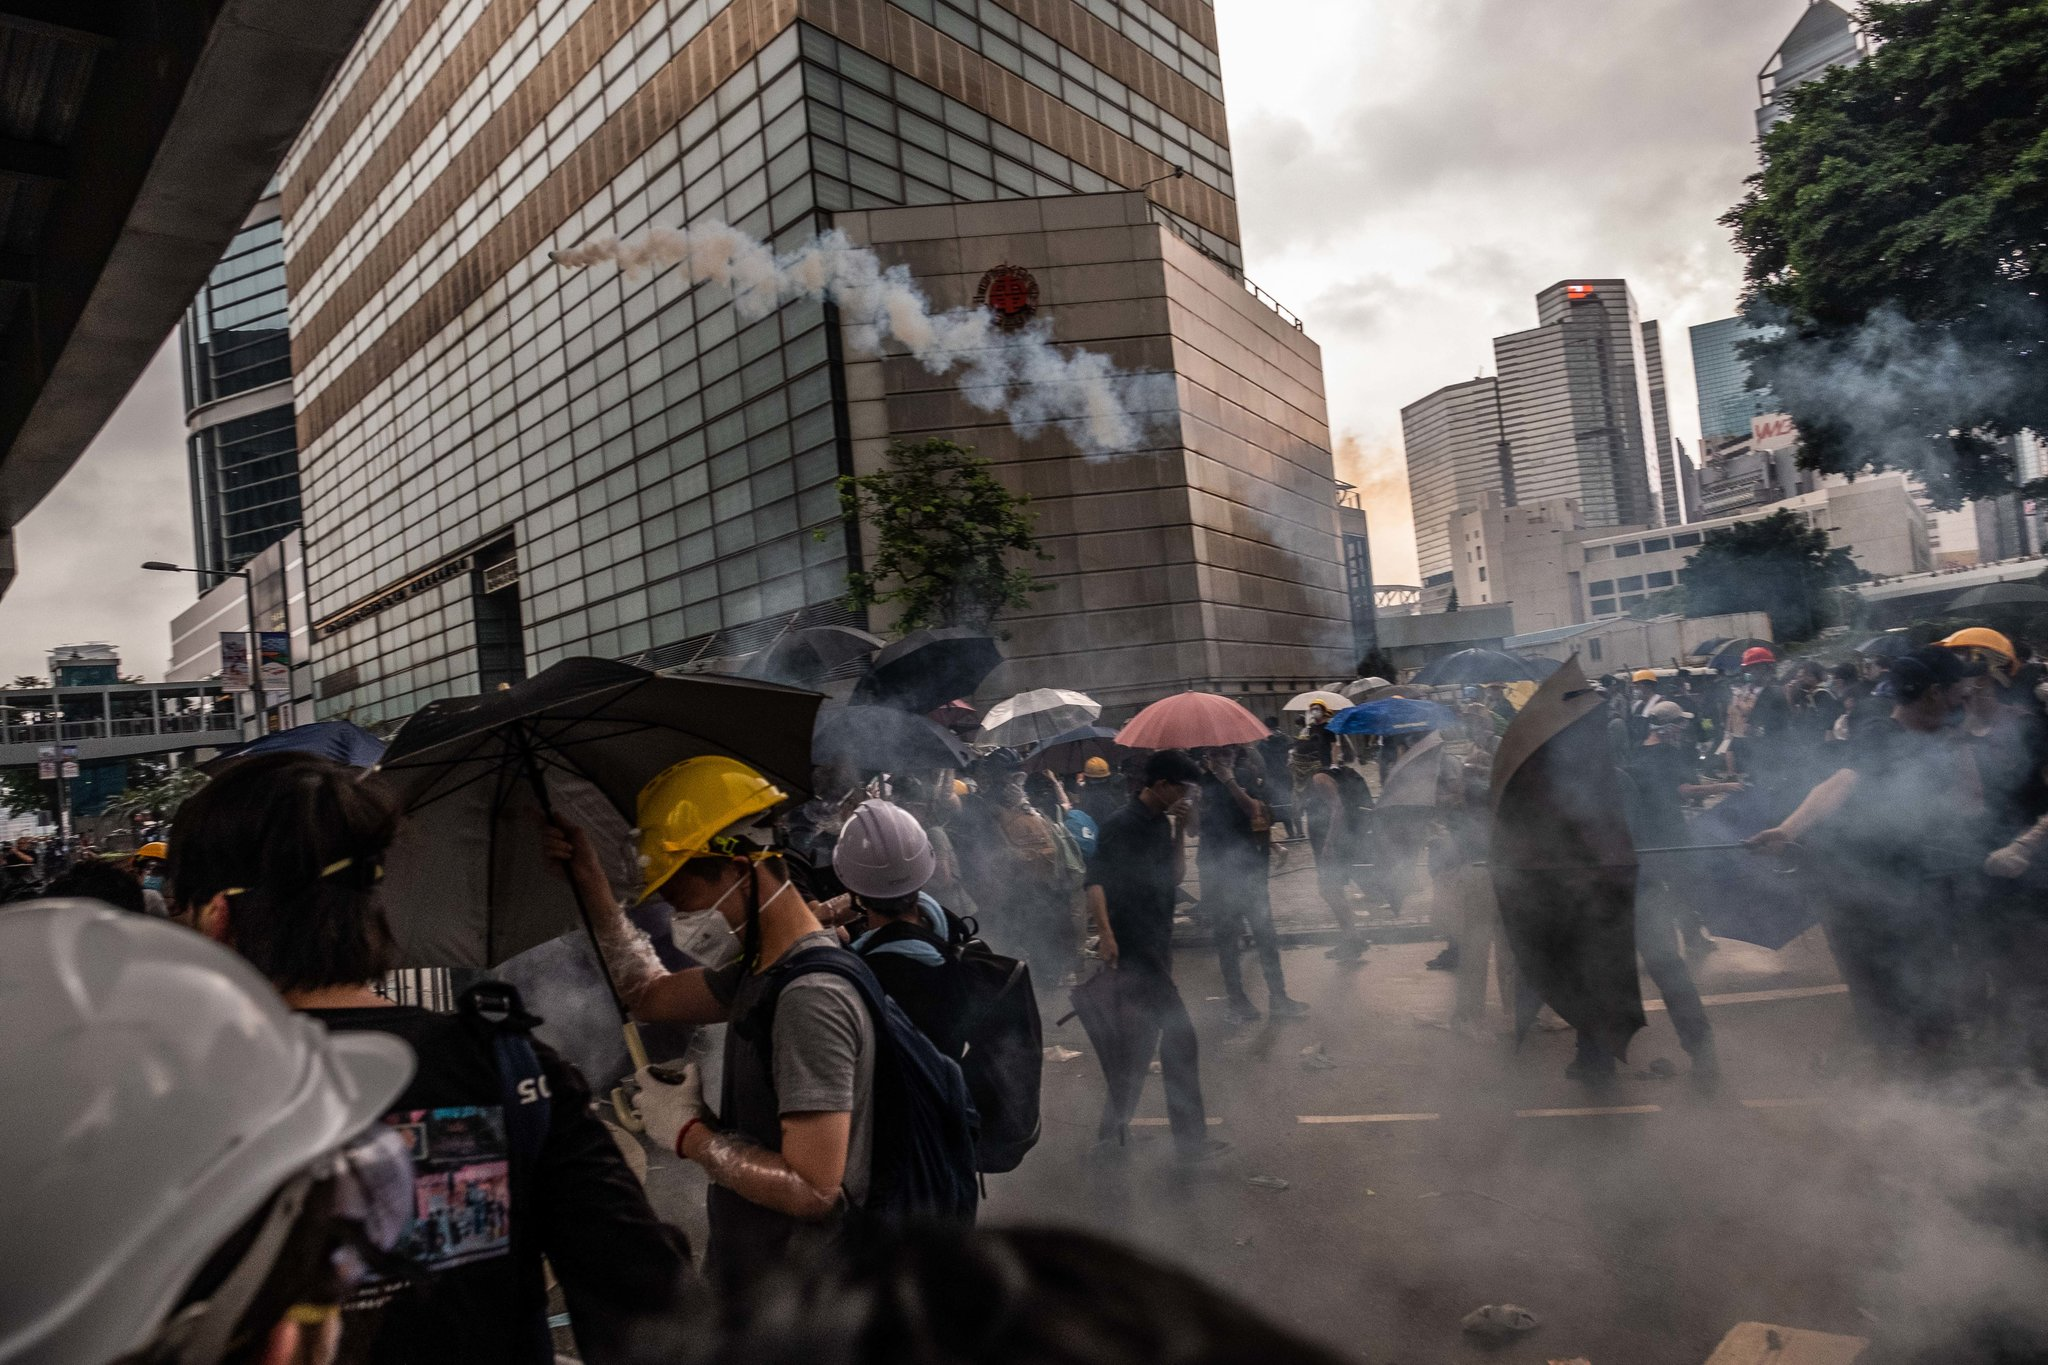 The Hong Kong police used tear gas on Wednesday as protesters approached the Legislative Council, where lawmakers had been scheduled to debate a contentious extradition law. Credit Lam Yik Fei for The New York Times